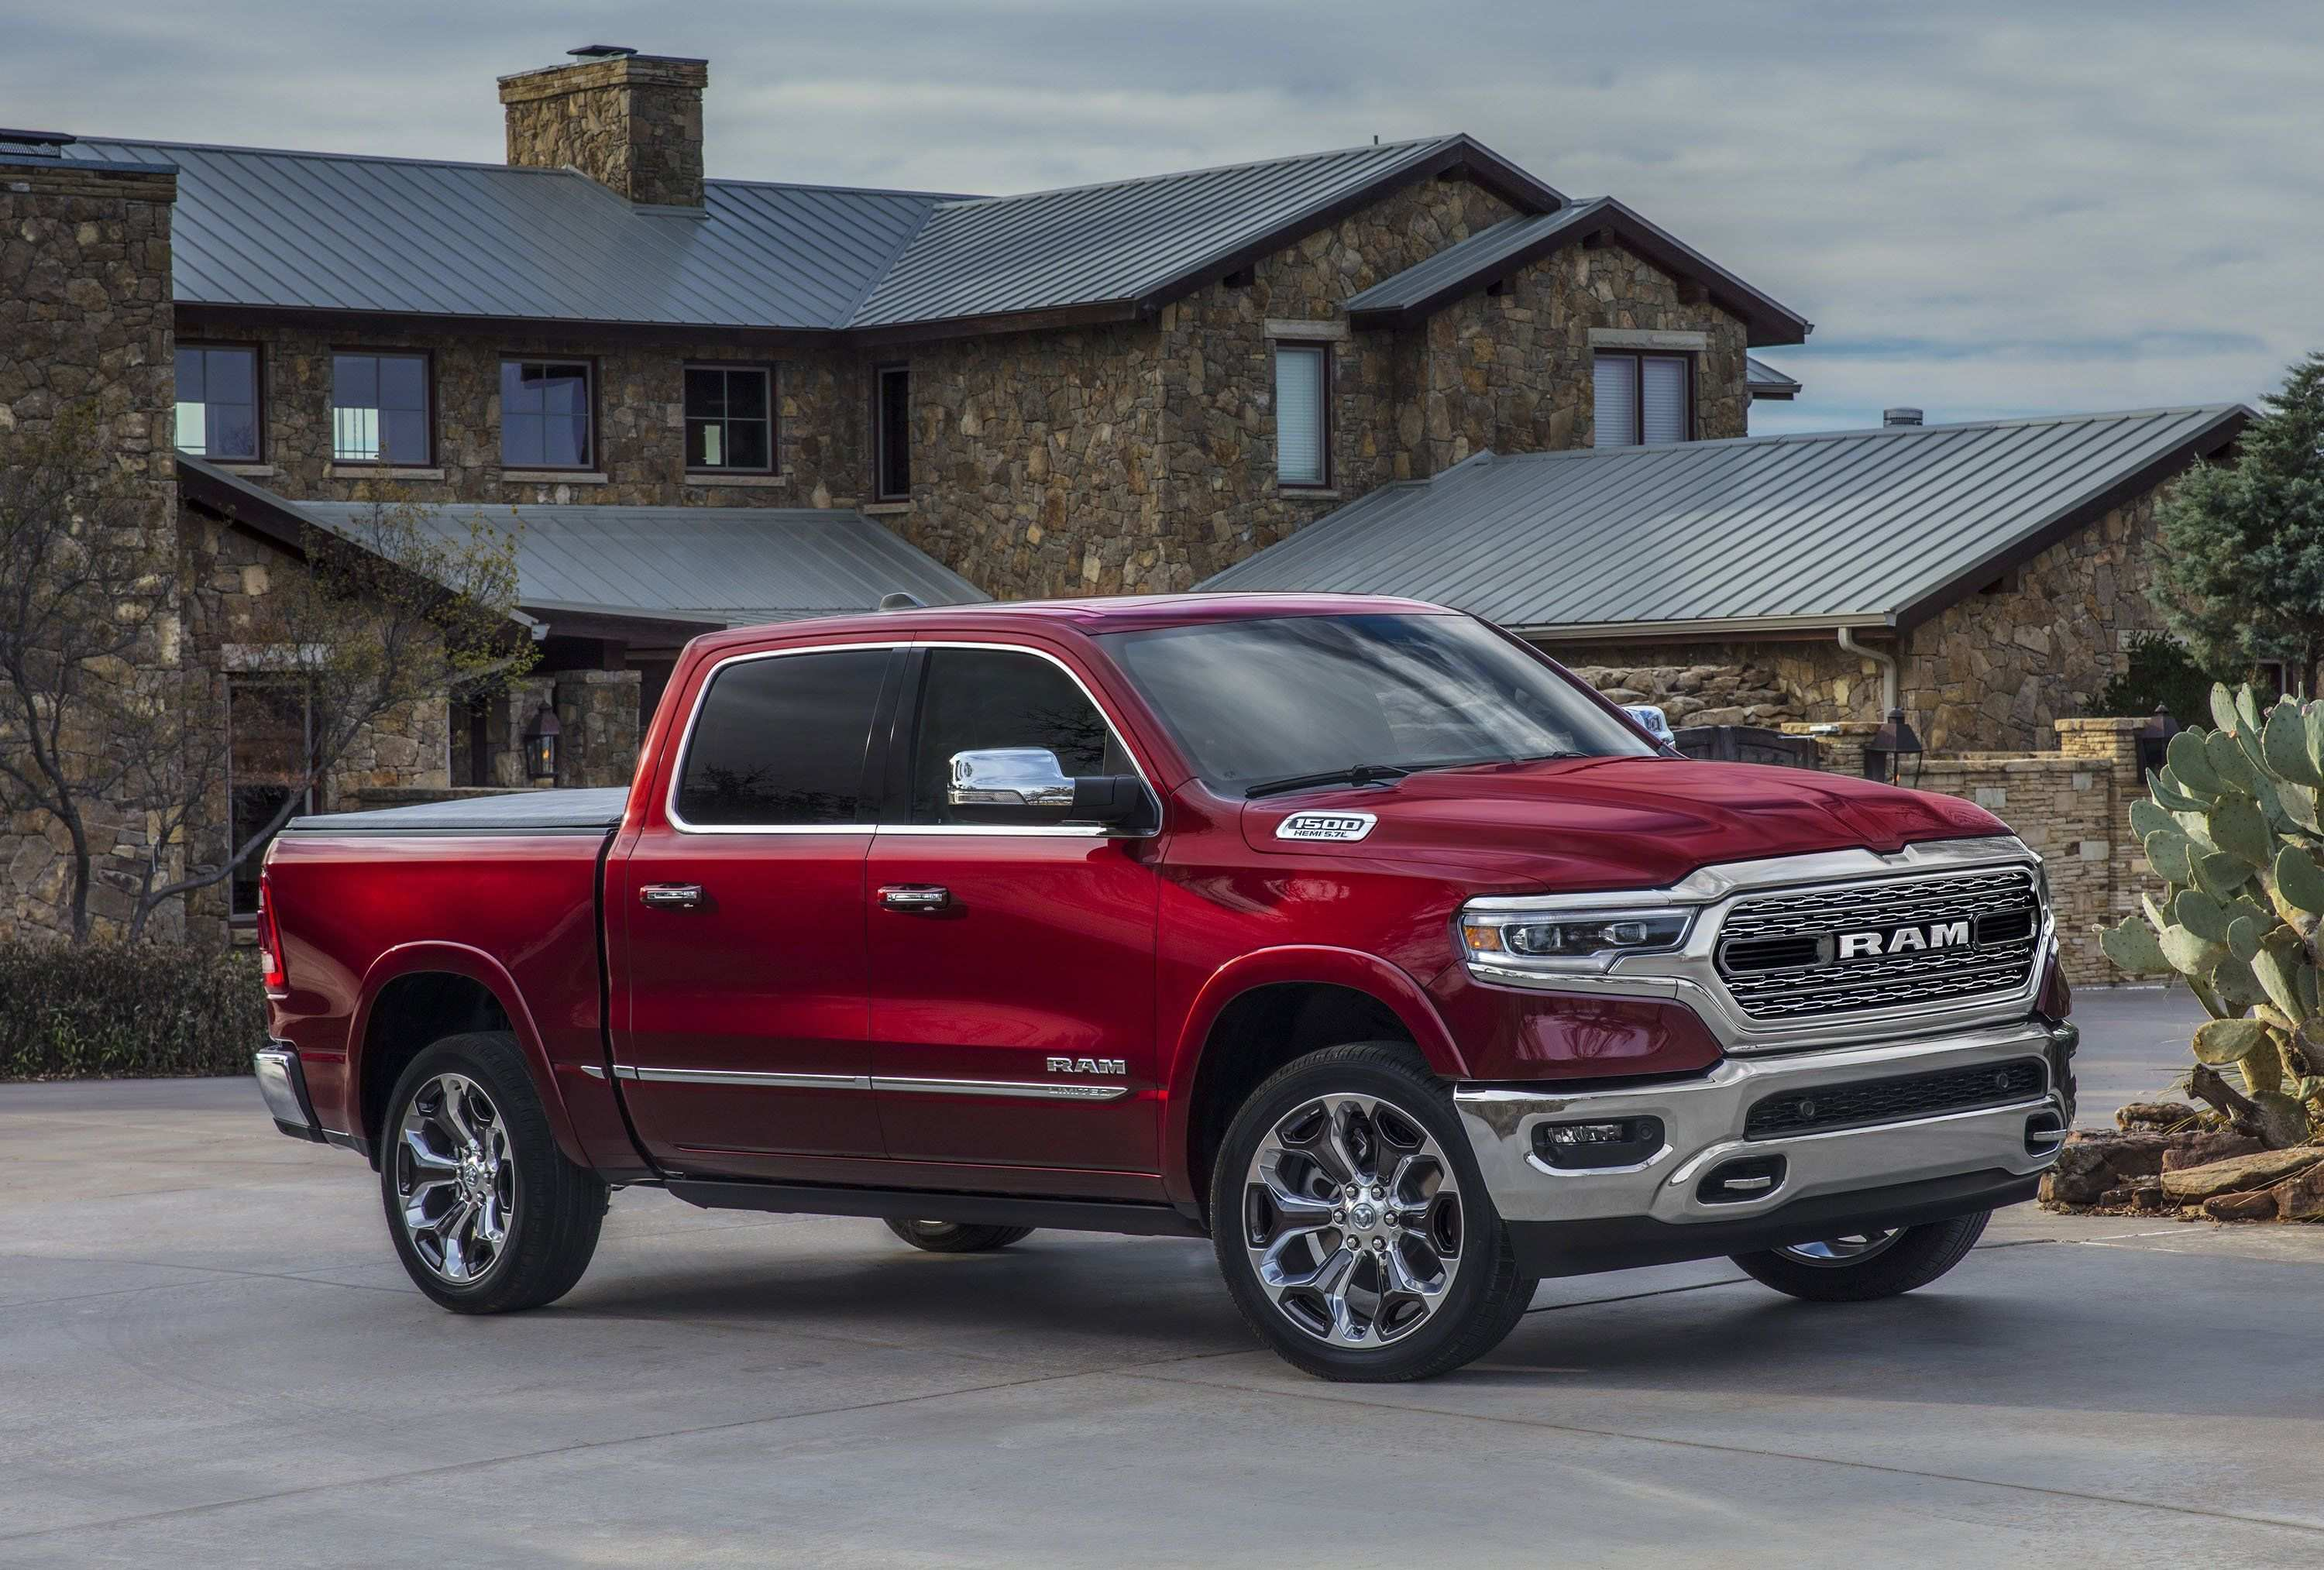 39 A 2020 Dodge Ram 2500 Release Date And Concept